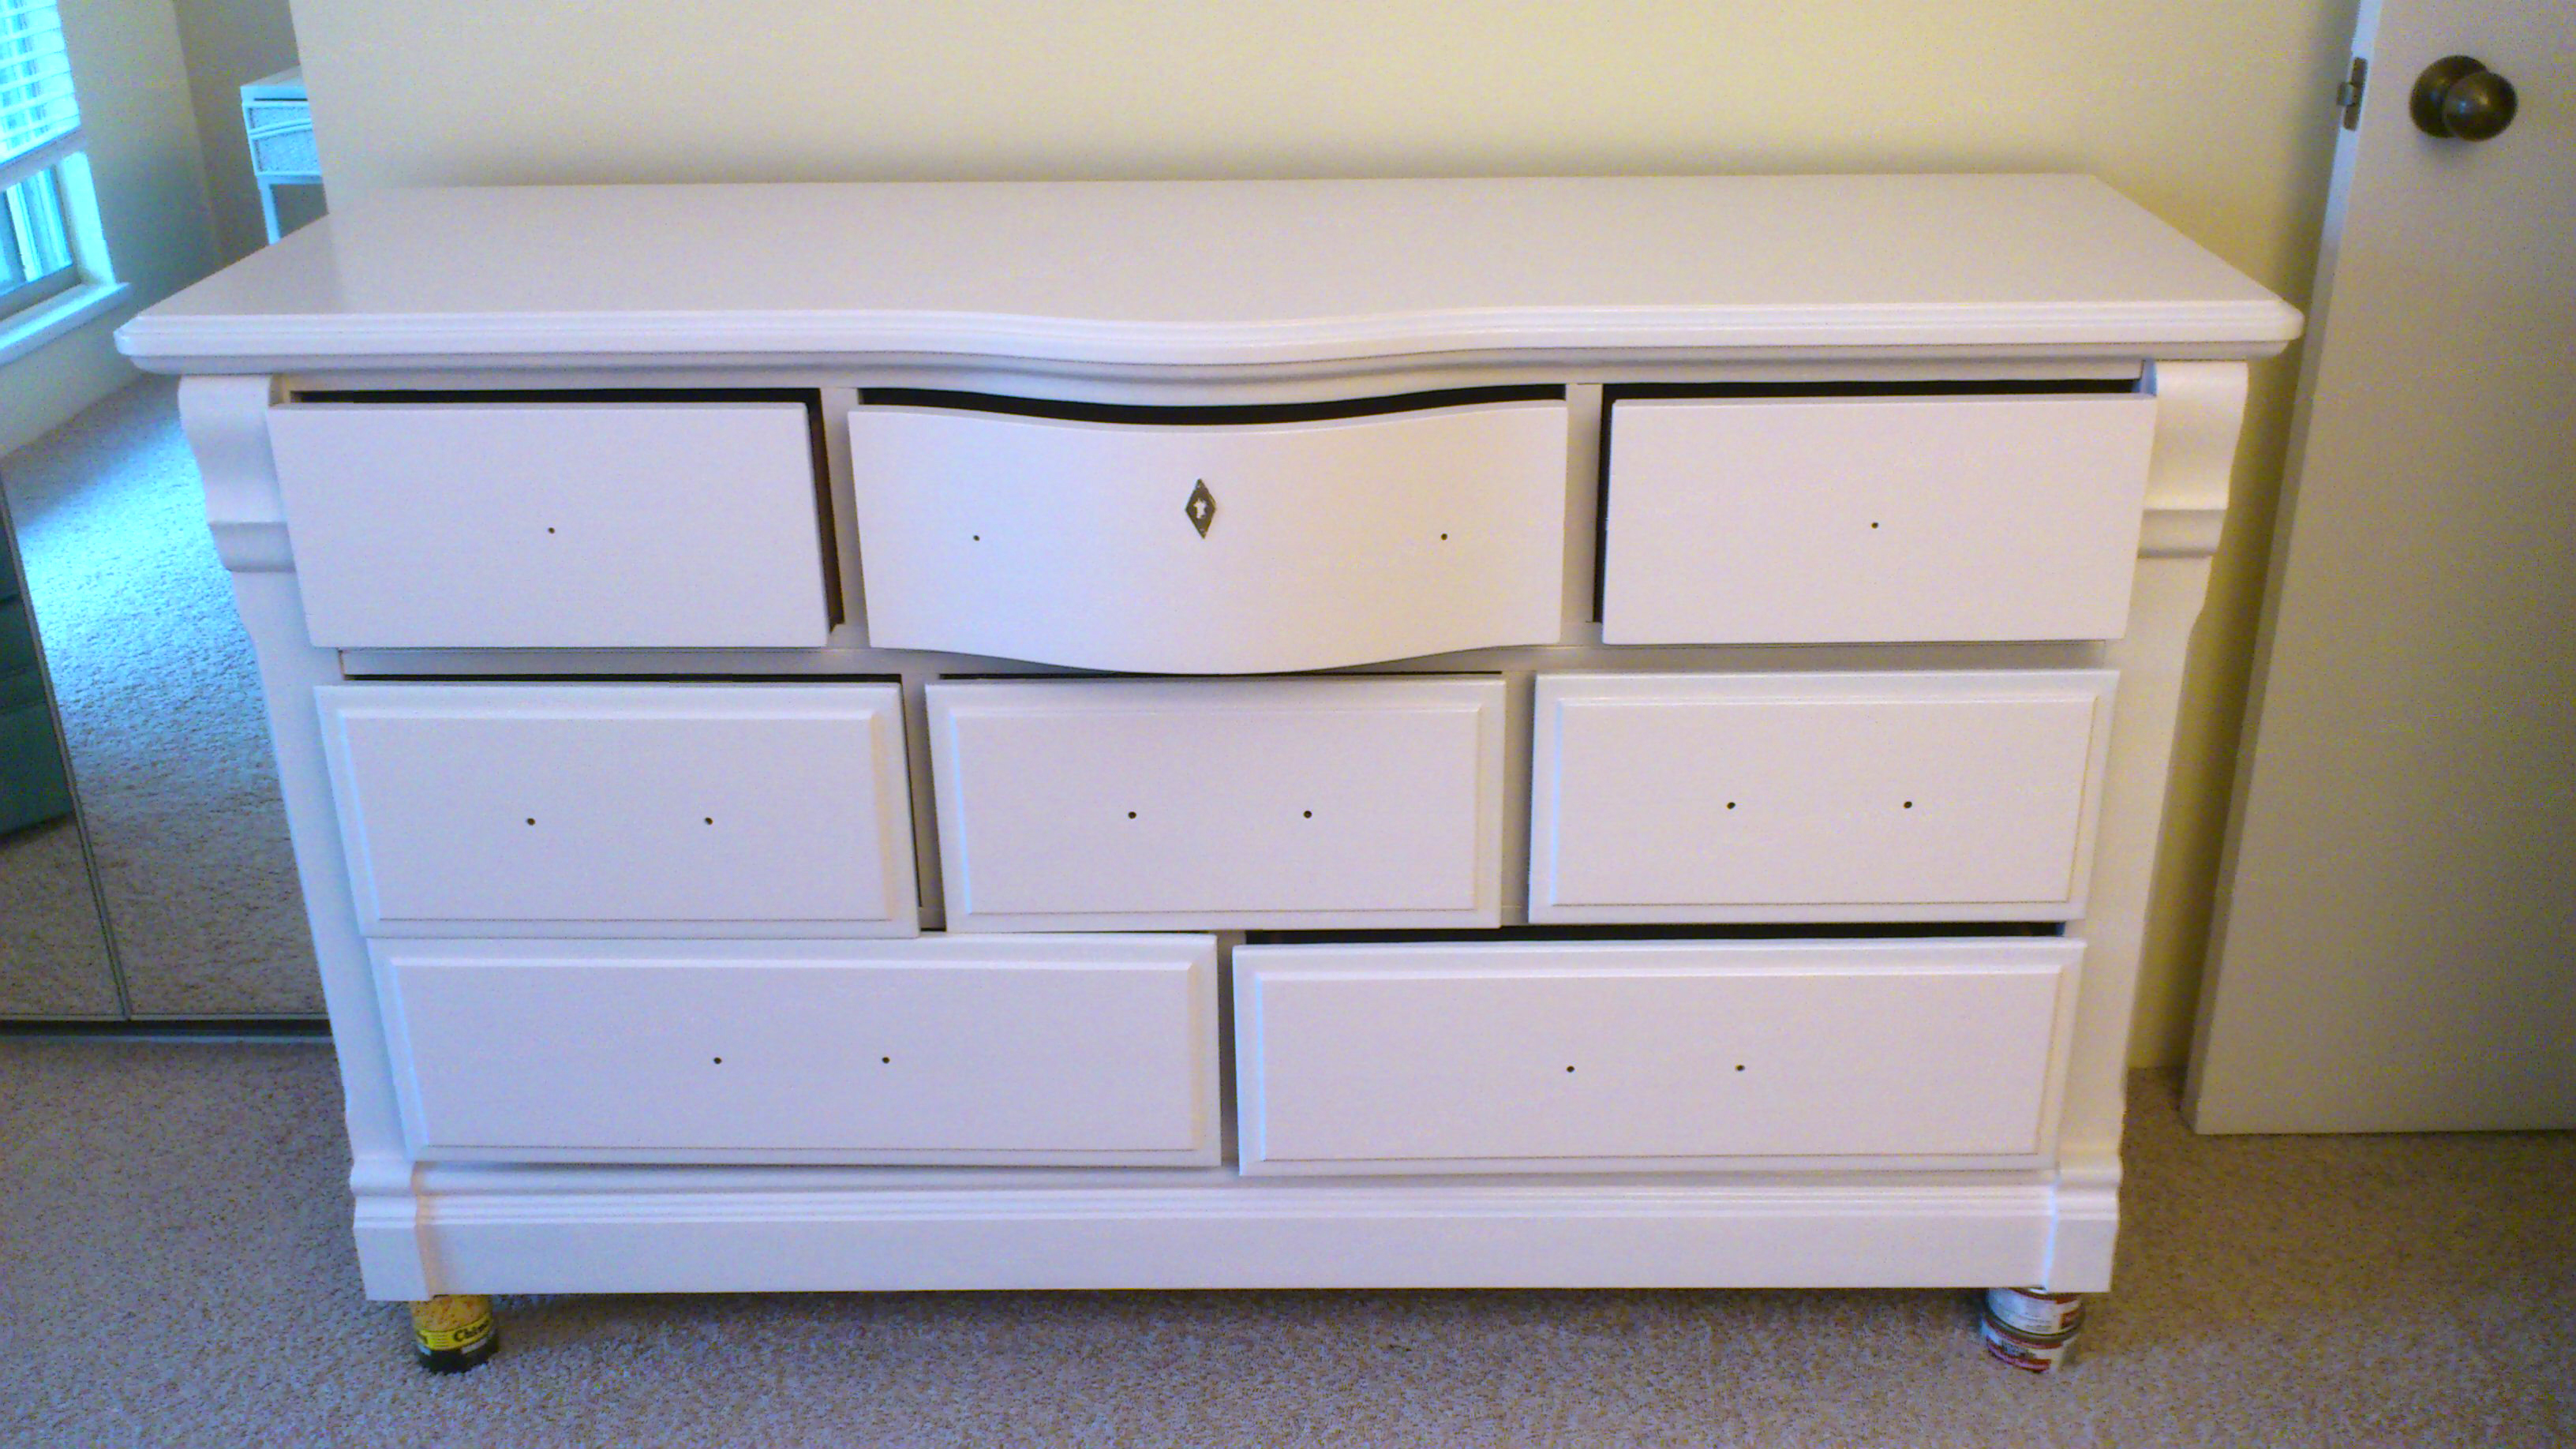 Images of painted bedroom furniture handy gal tools updates dresser to white skvywbr